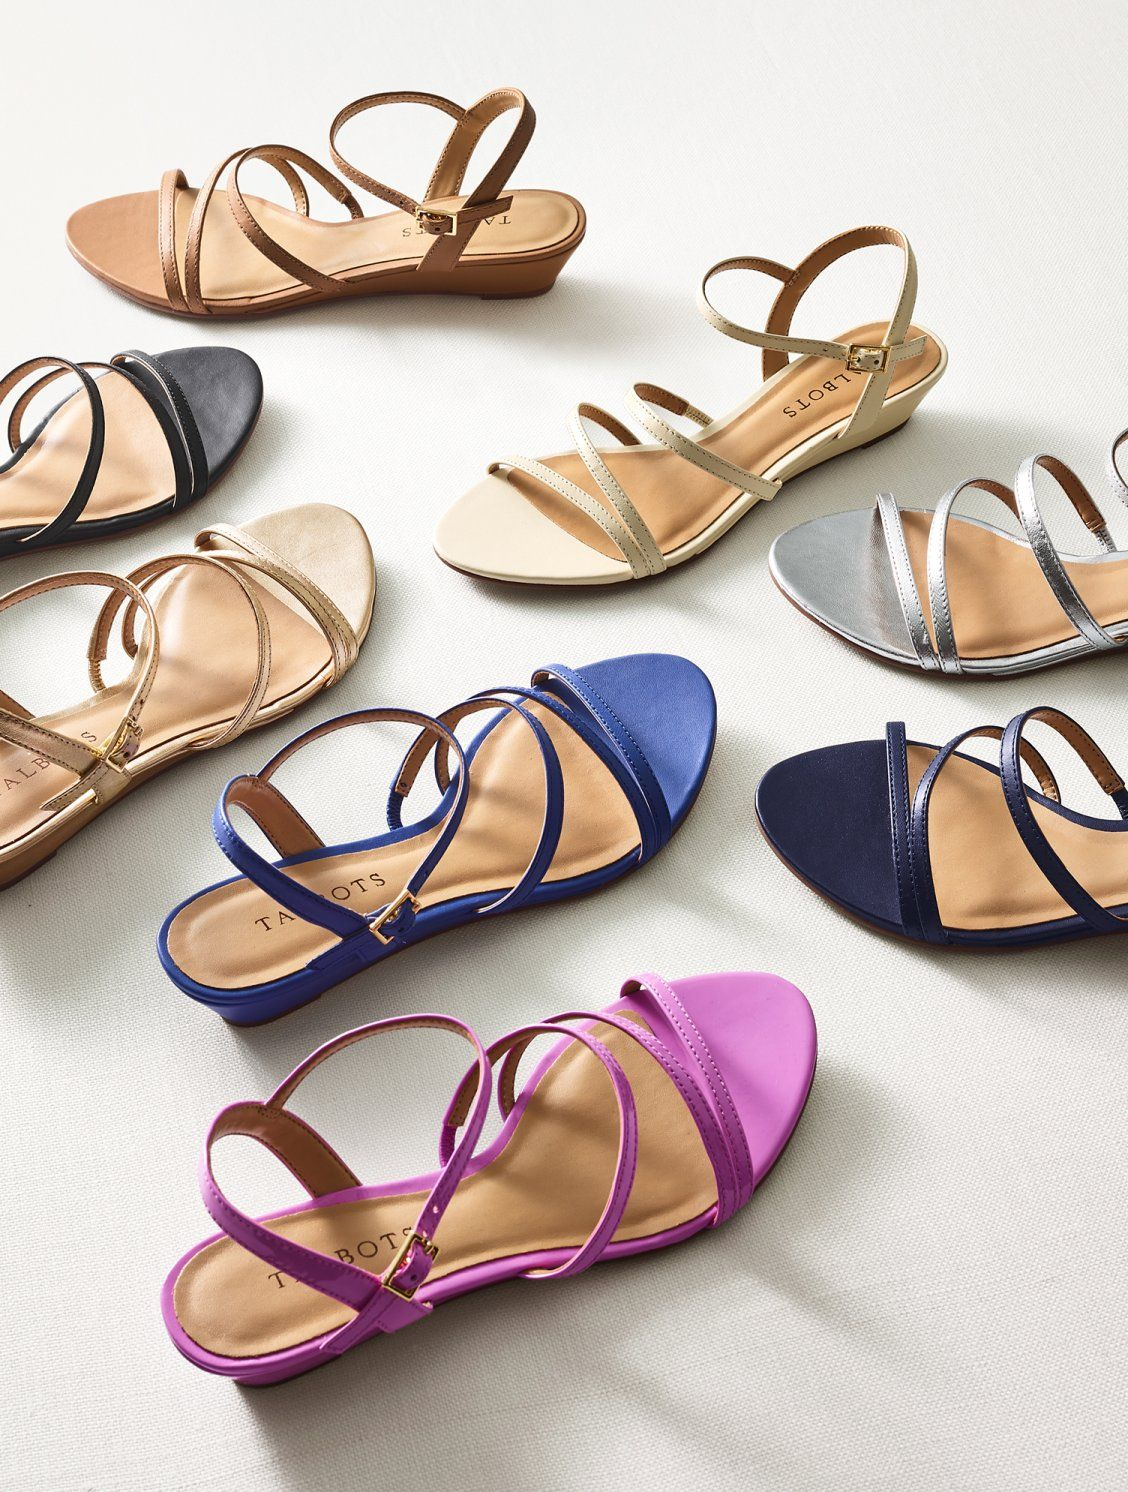 6669f98616f The easy comfort of a wedge is met with the elegance of a strappy sandal.  This versatile sandal can be worn with dresses or casually with jeans